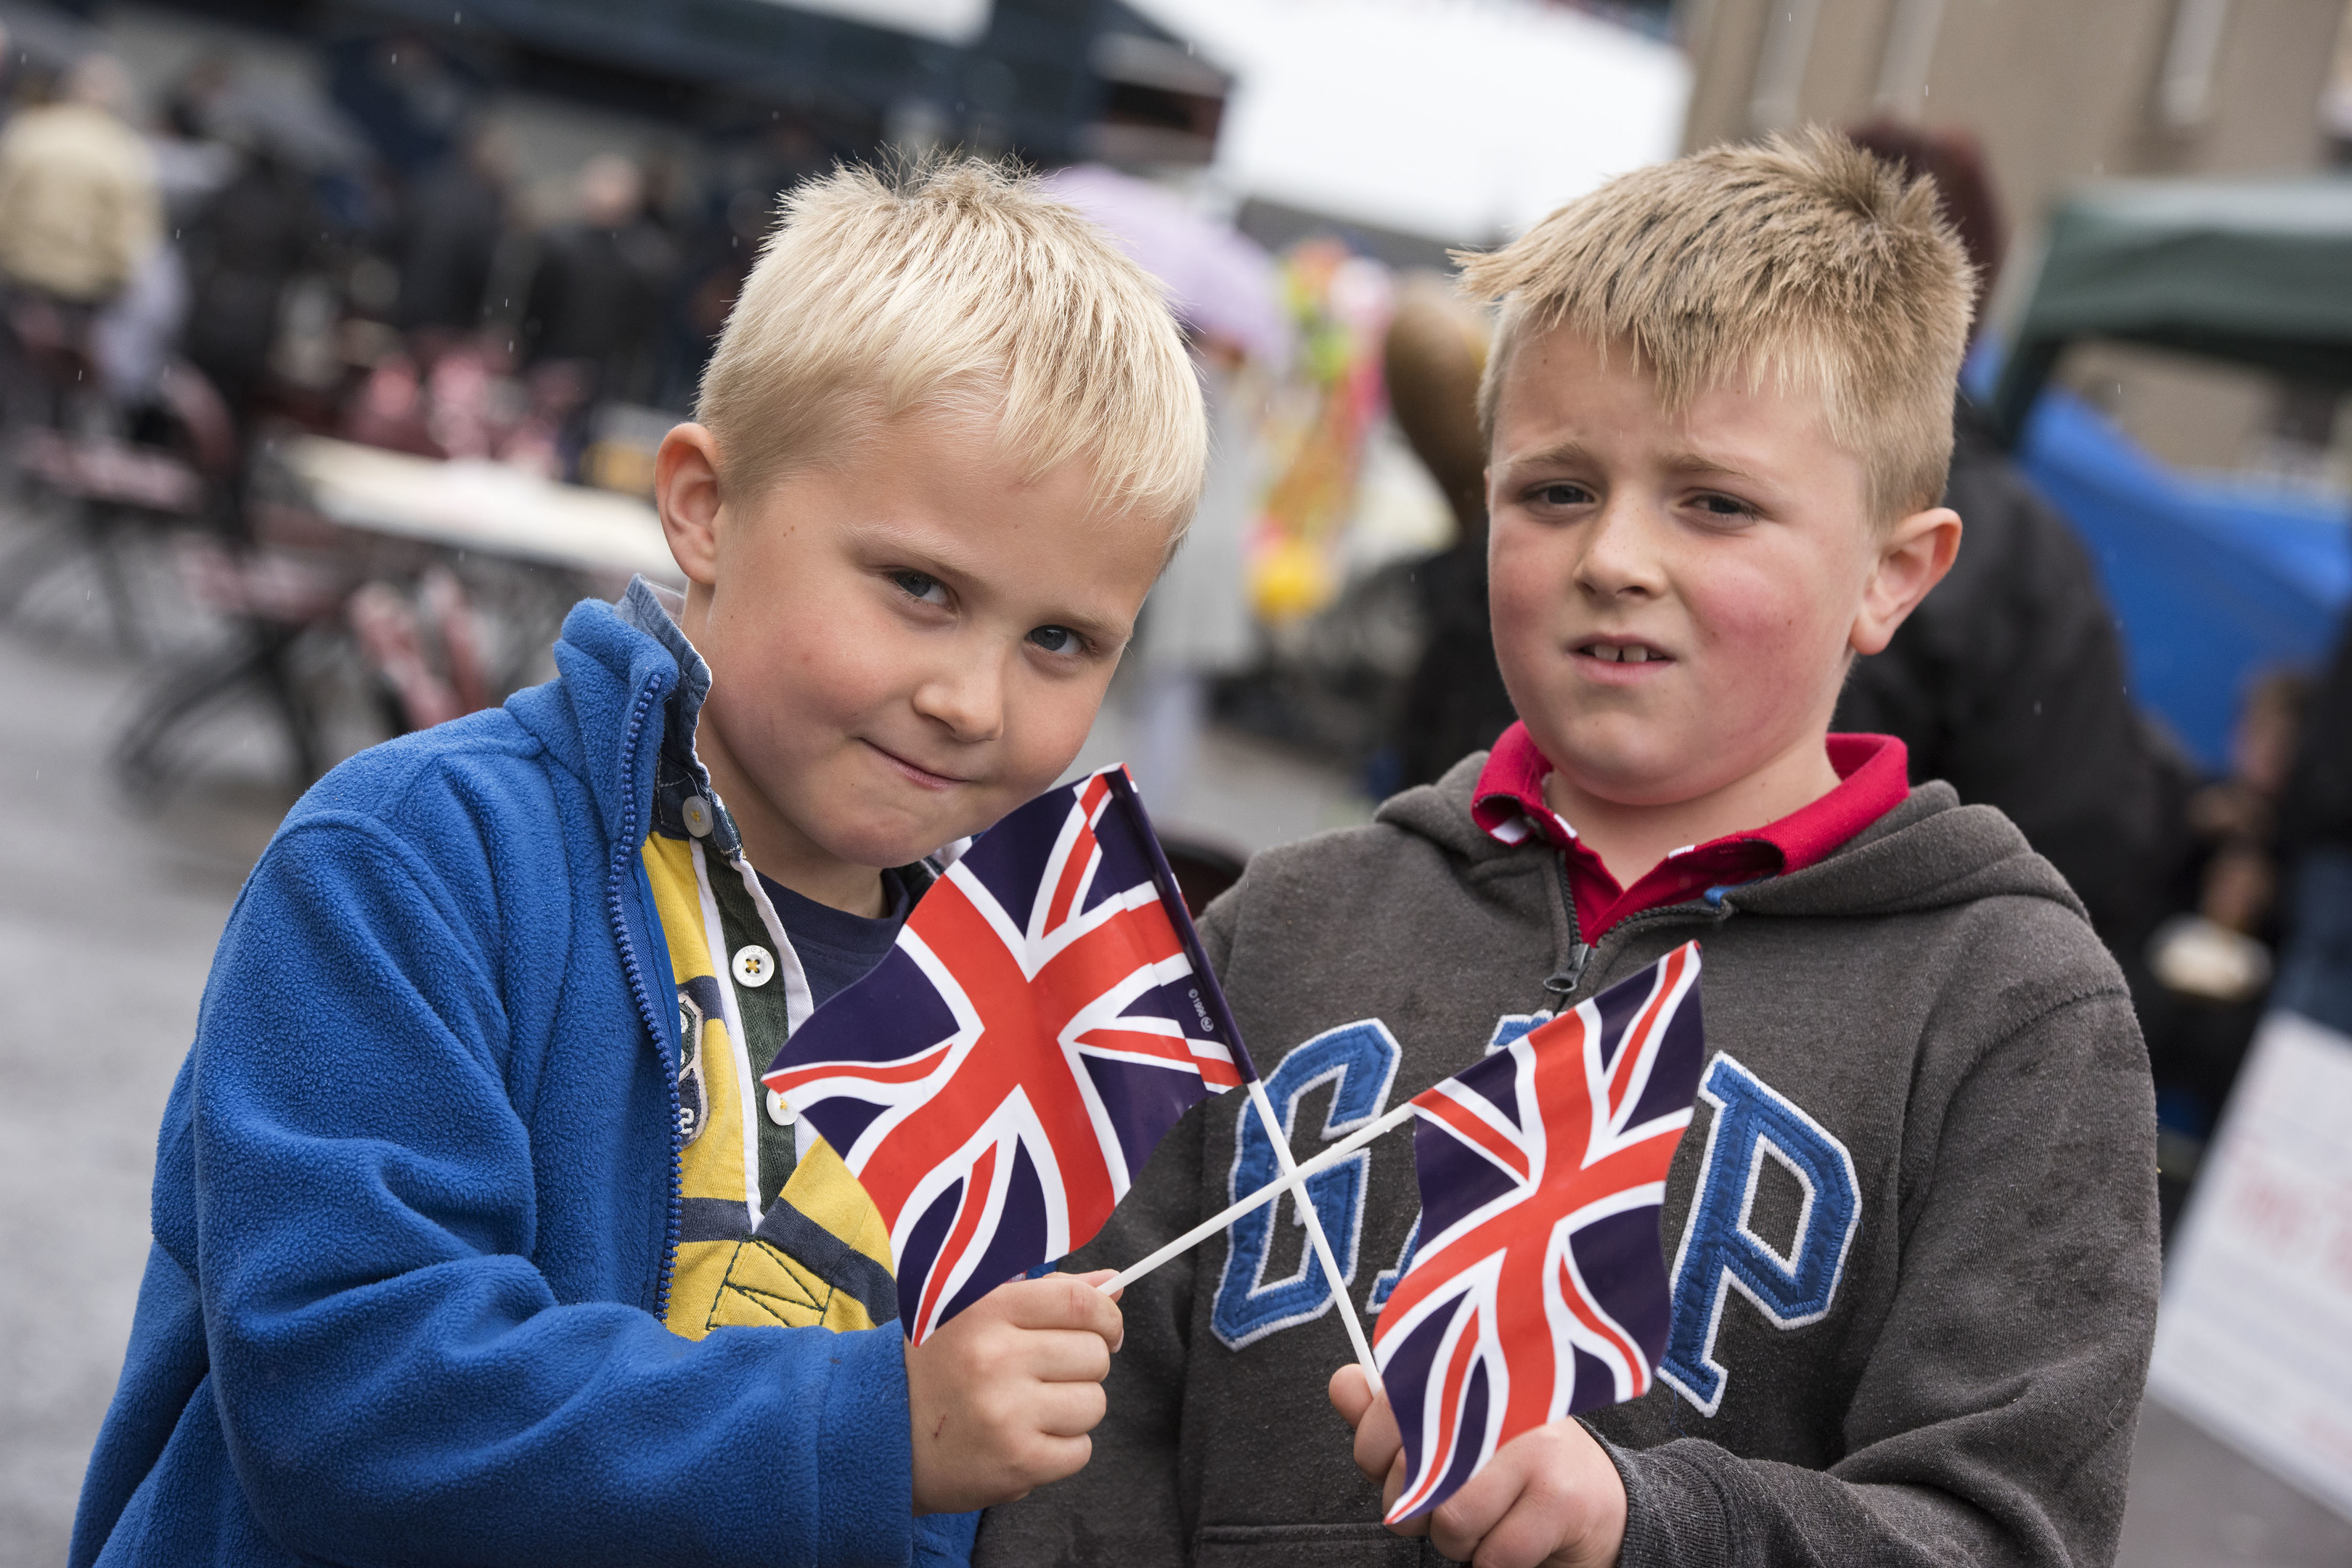 Harris McLeod and Connor Millen waving their Union Jacks at the Montrose street party.